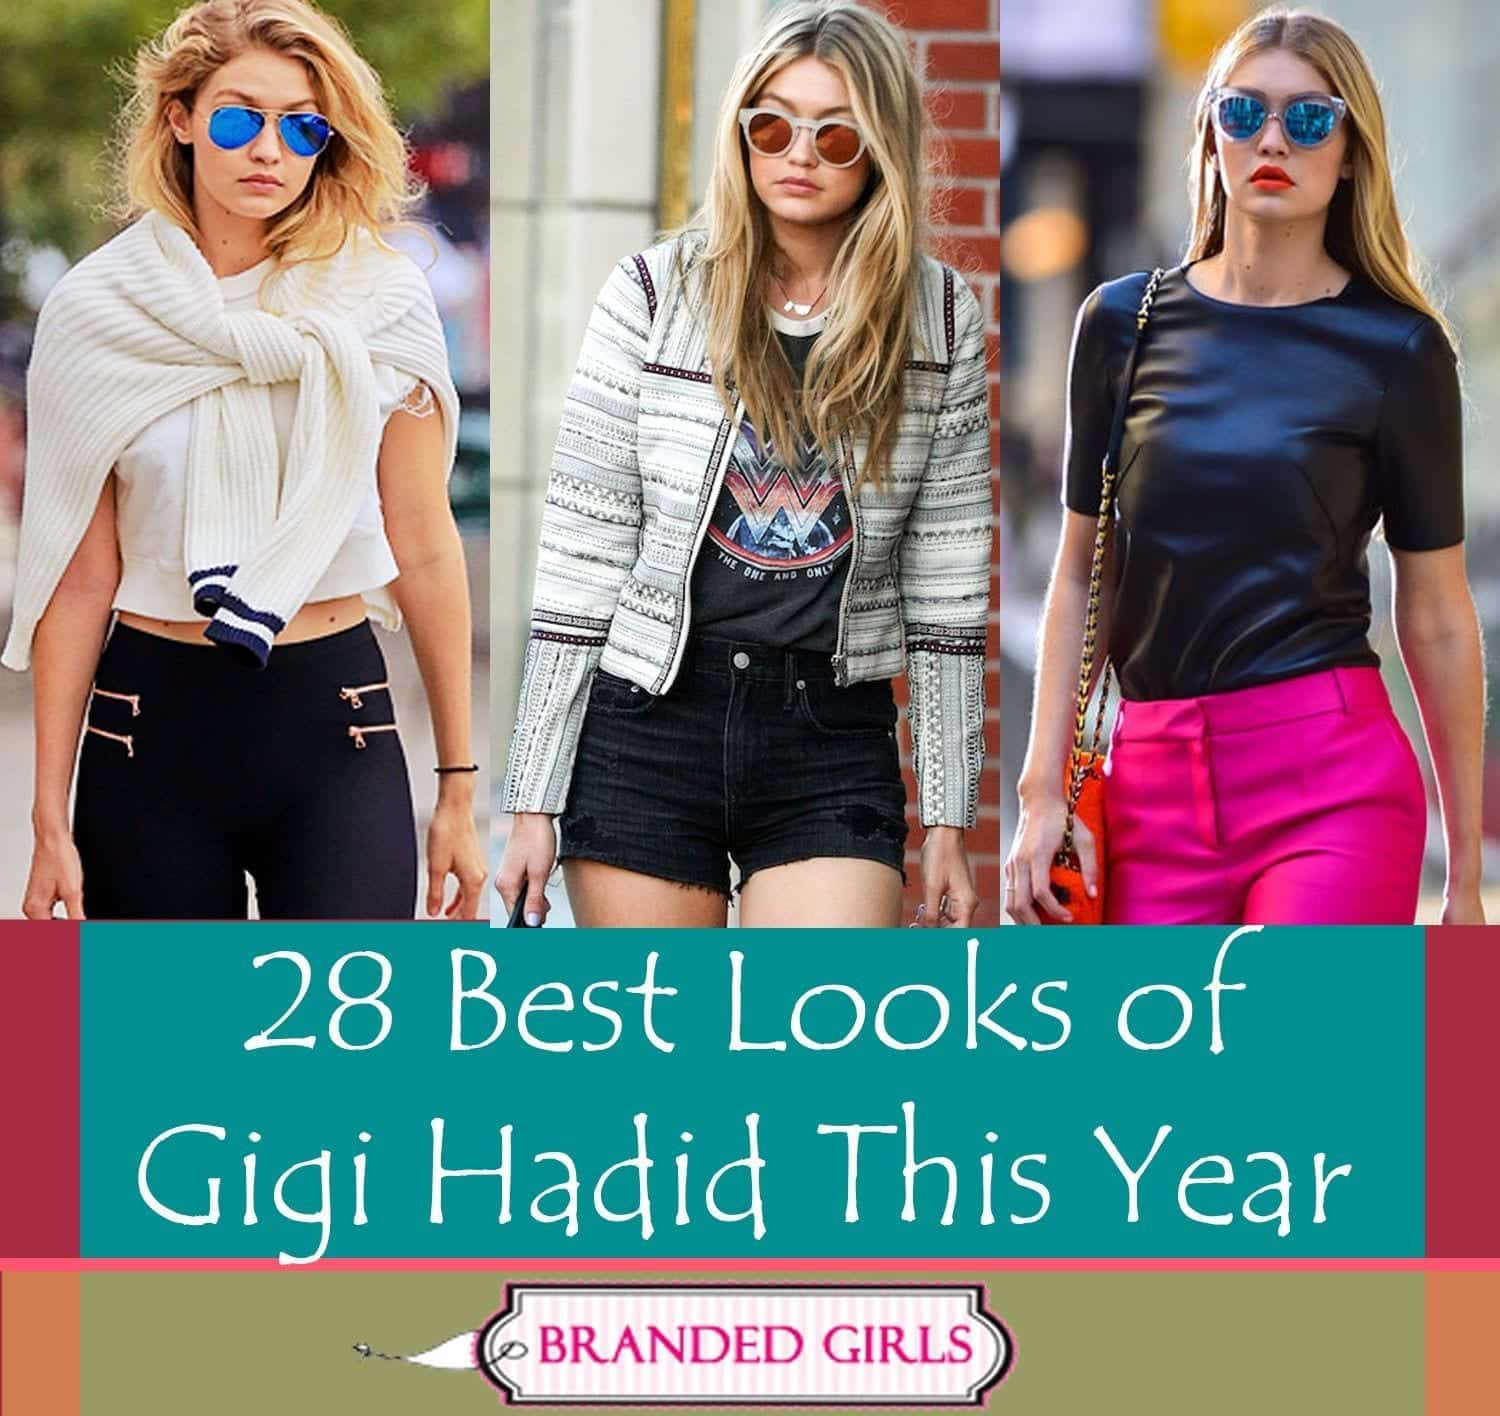 28-best-looks-of-gigi-hadid-this-year-1 Gigi Hadid Outfits-28 Best Looks of Gigi Hadid This Year